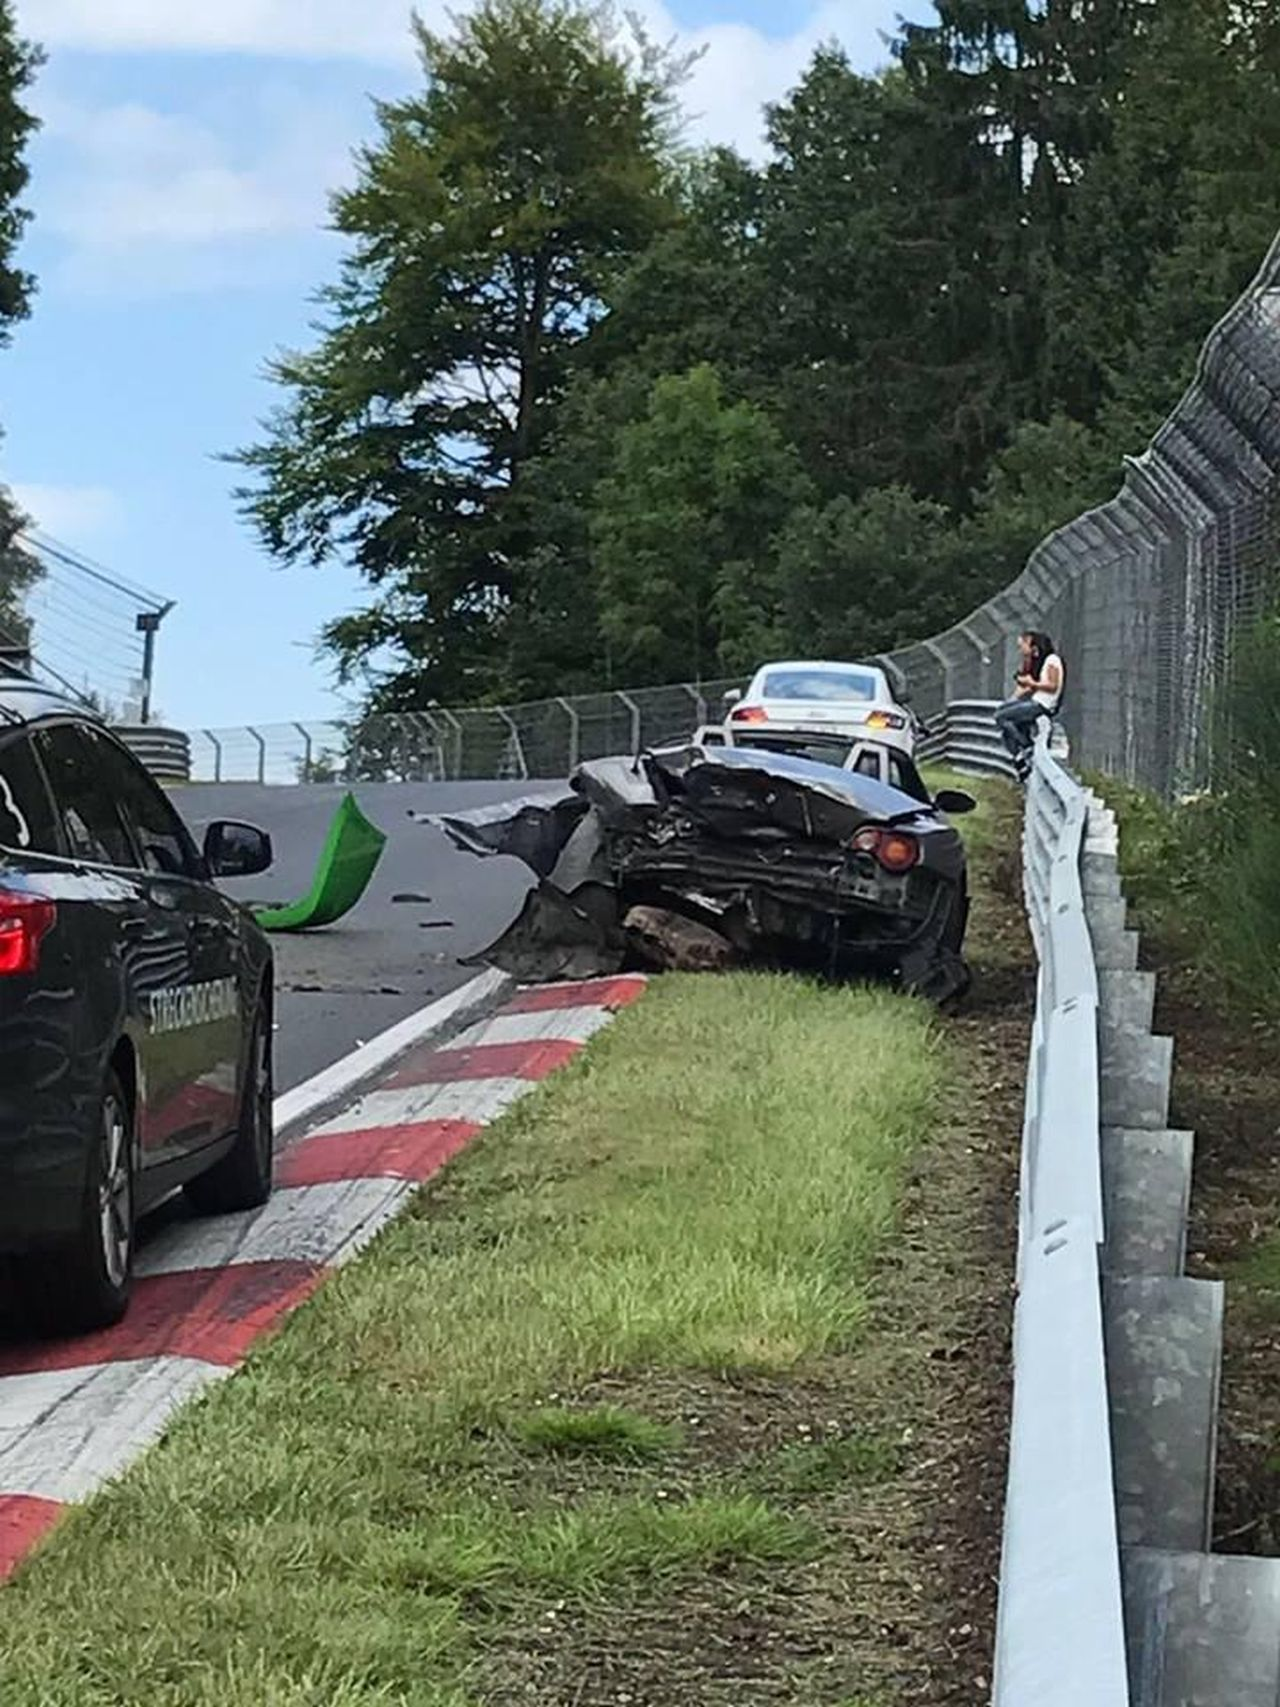 Nurburgring crash august 2017 (11)